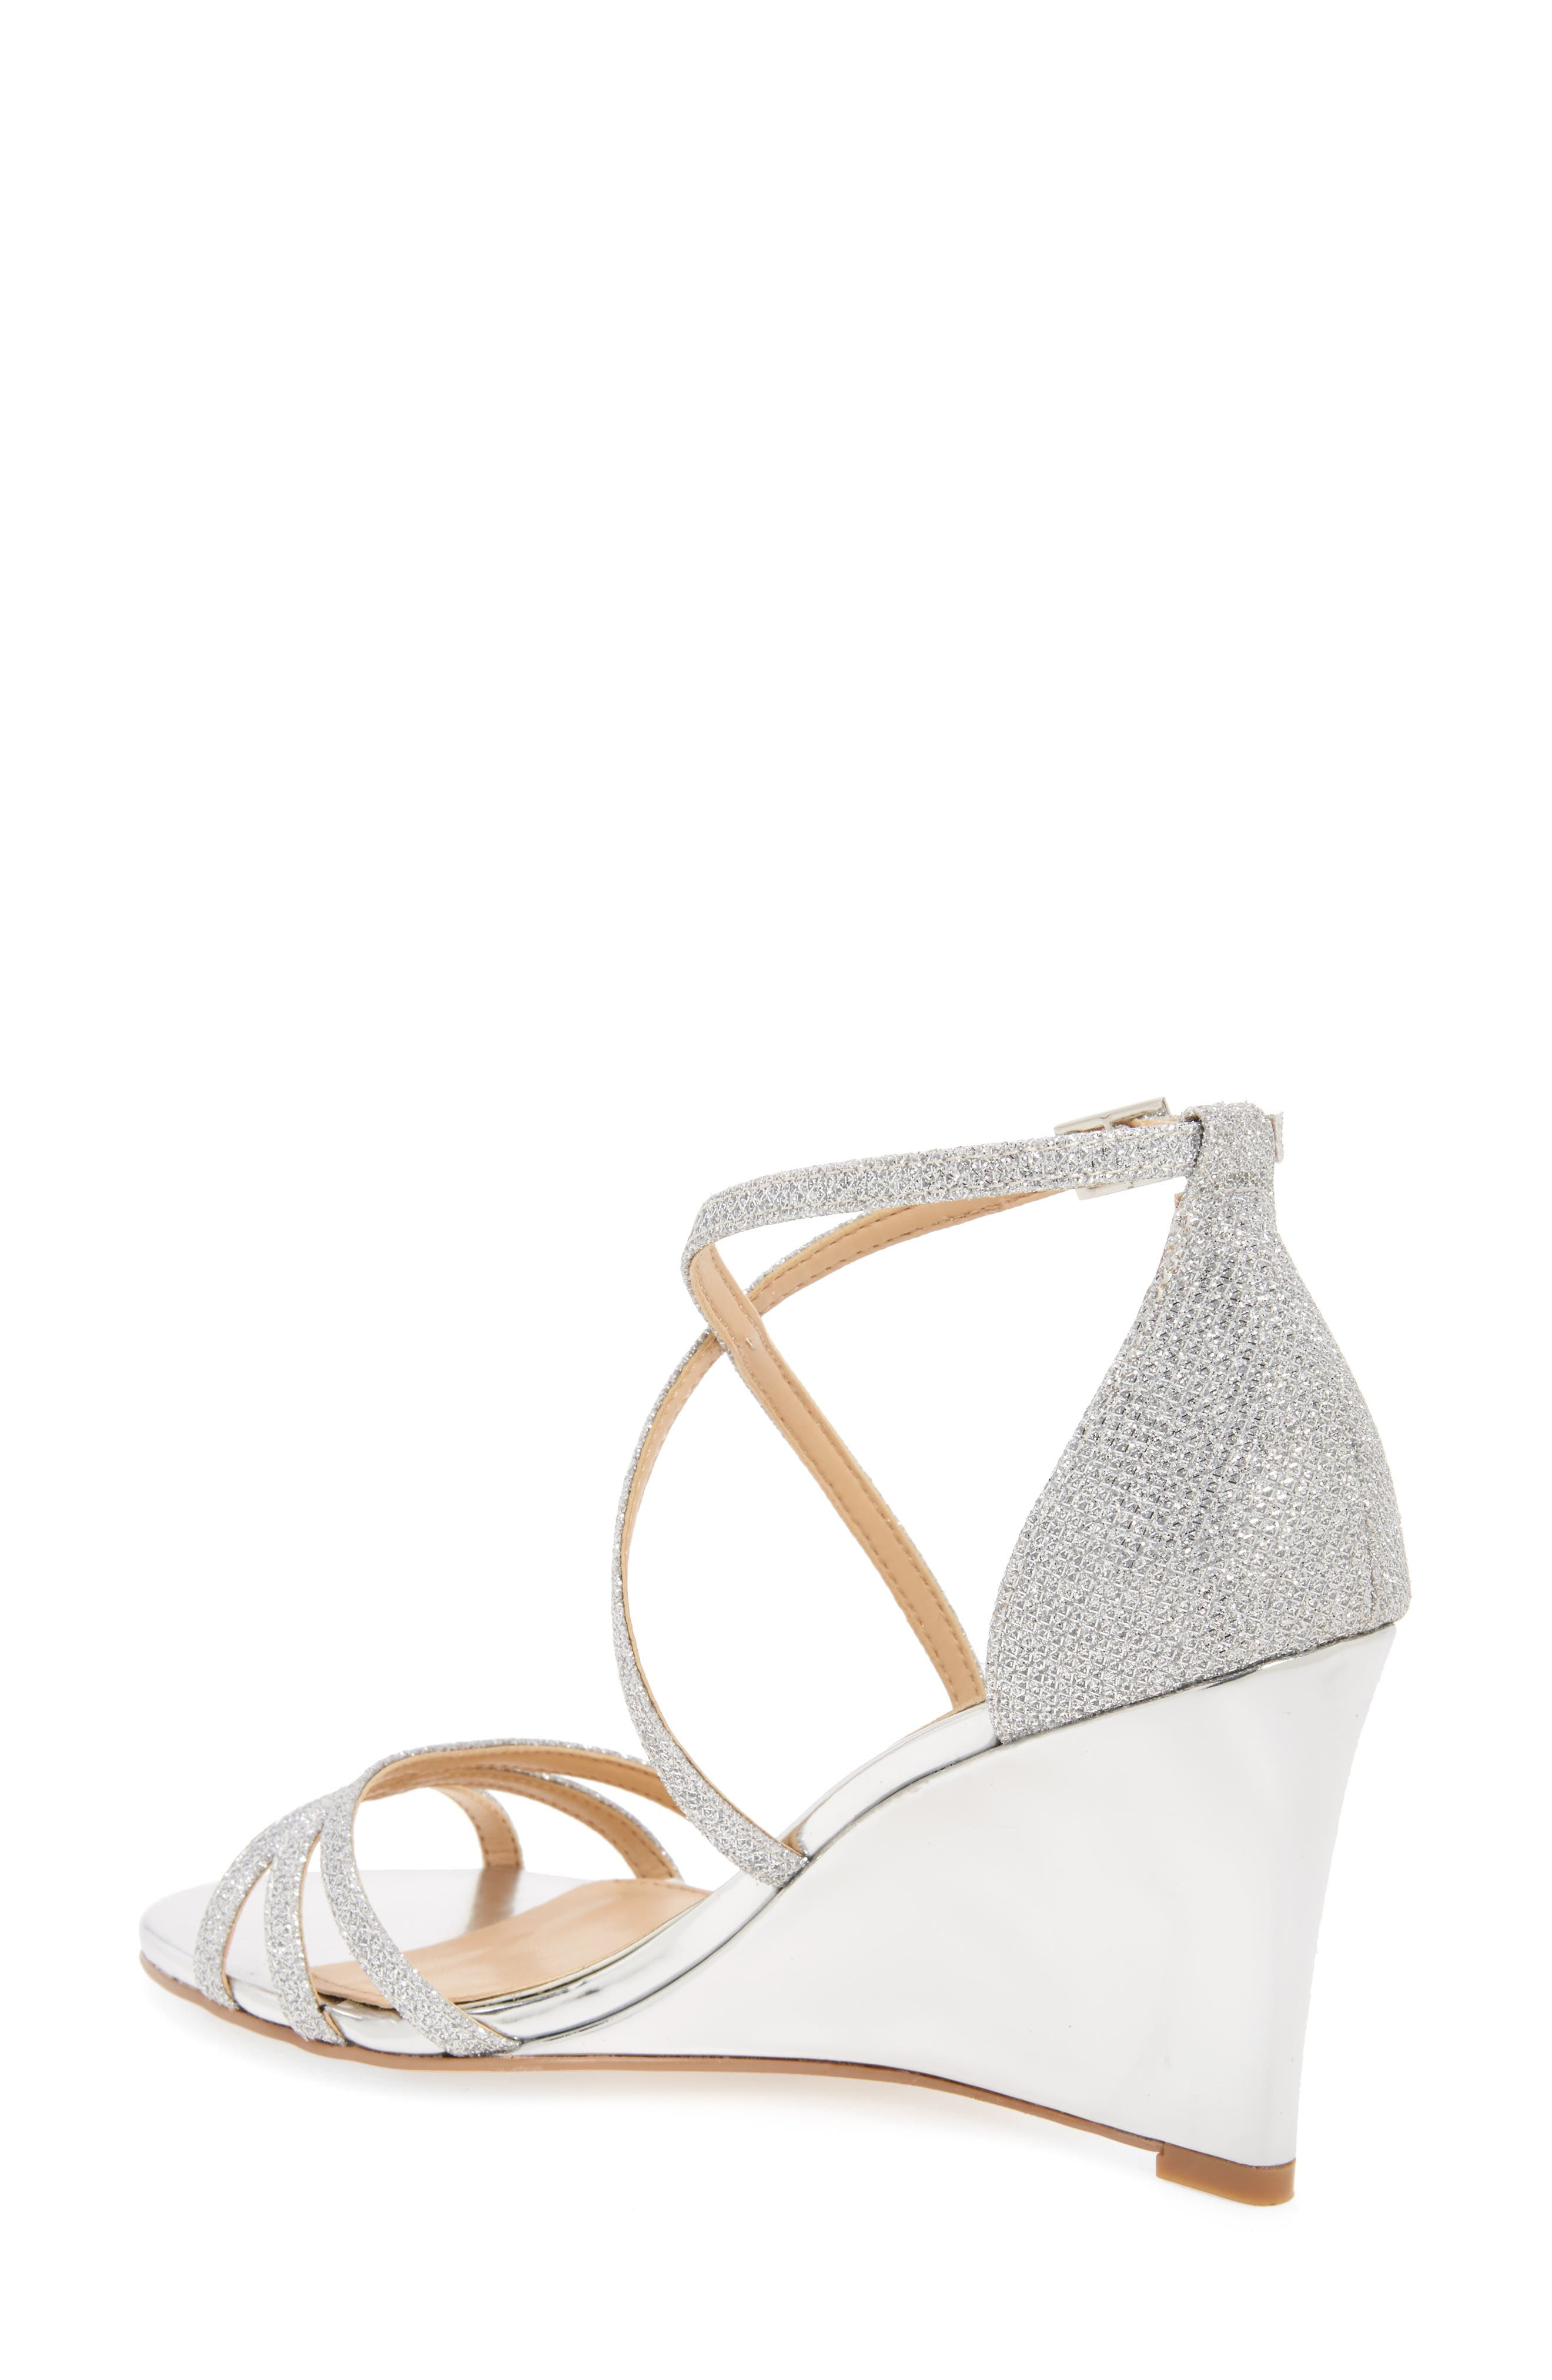 Hunt Glittery Wedge Sandal,                             Alternate thumbnail 2, color,                             SILVER GLITTER FABRIC